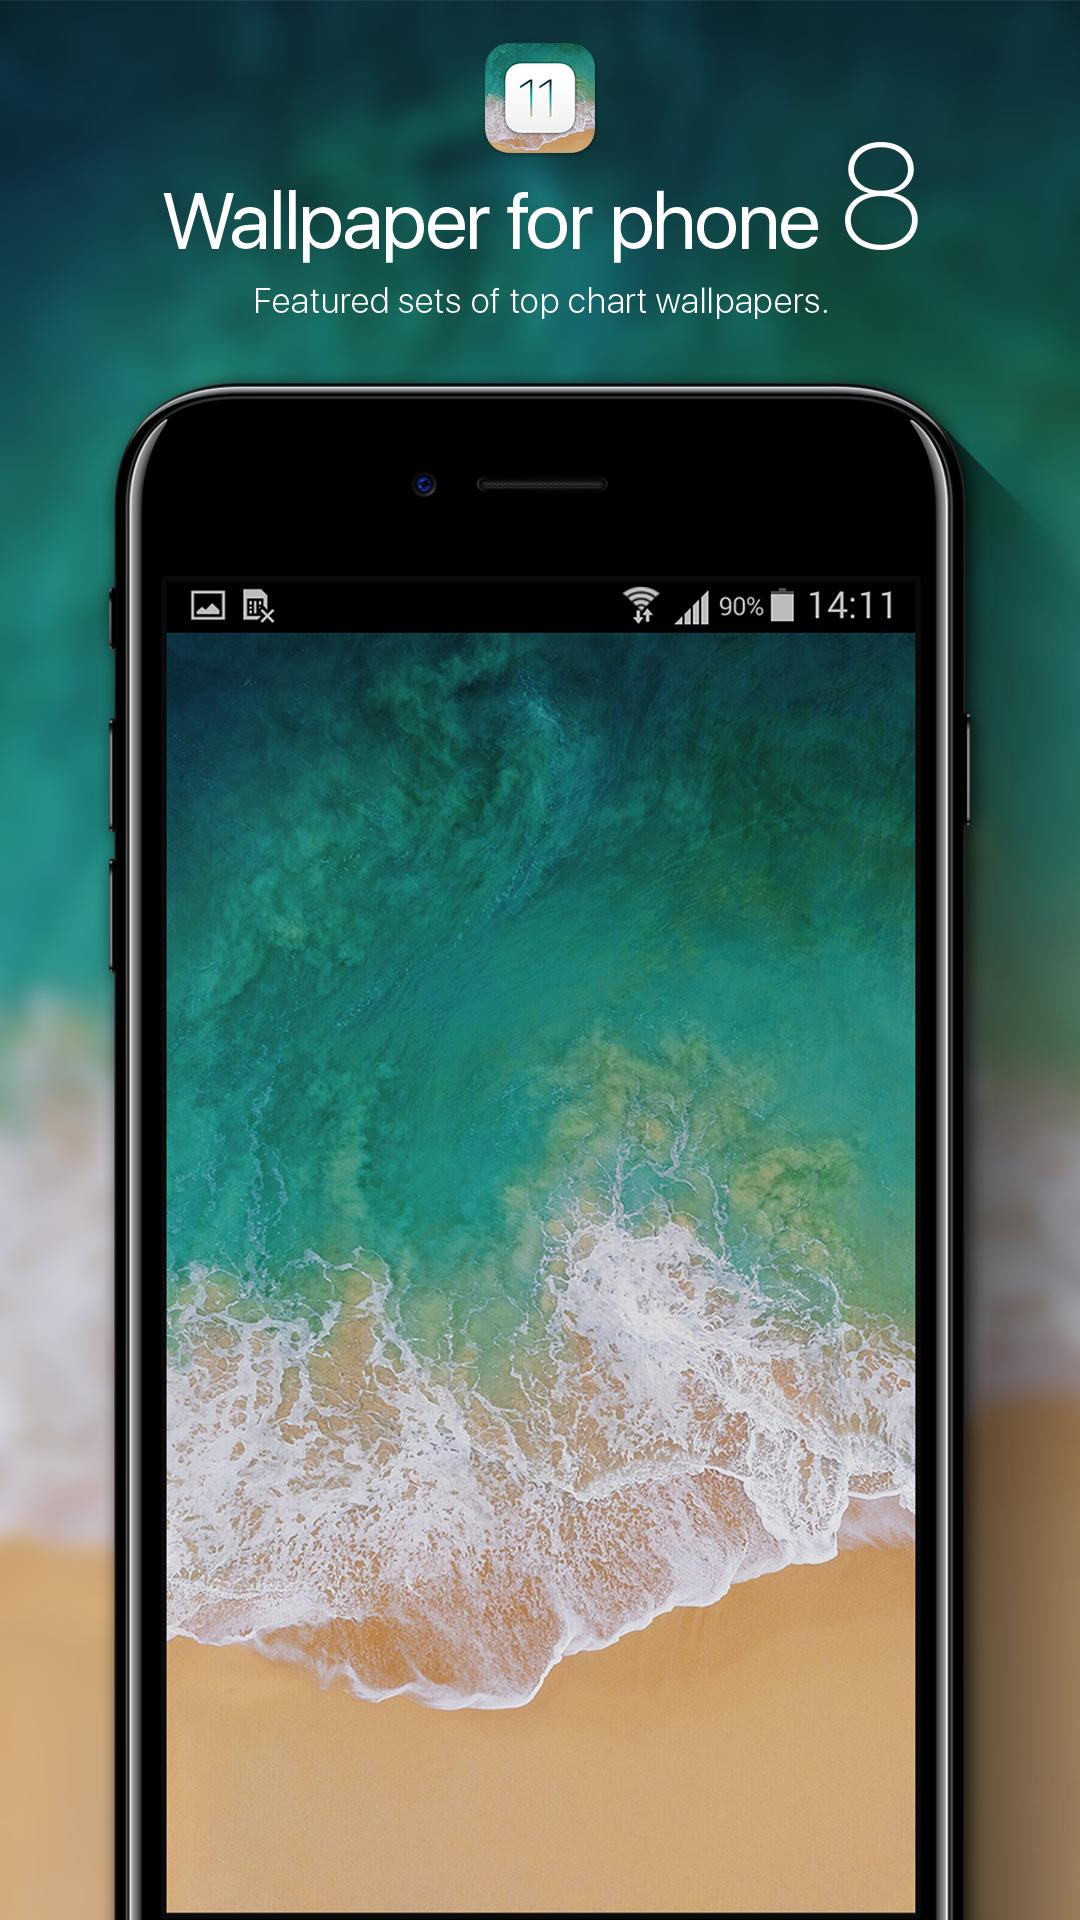 Wallpaper For Iphone 8 Wallpaper For Iphone 7s For Android